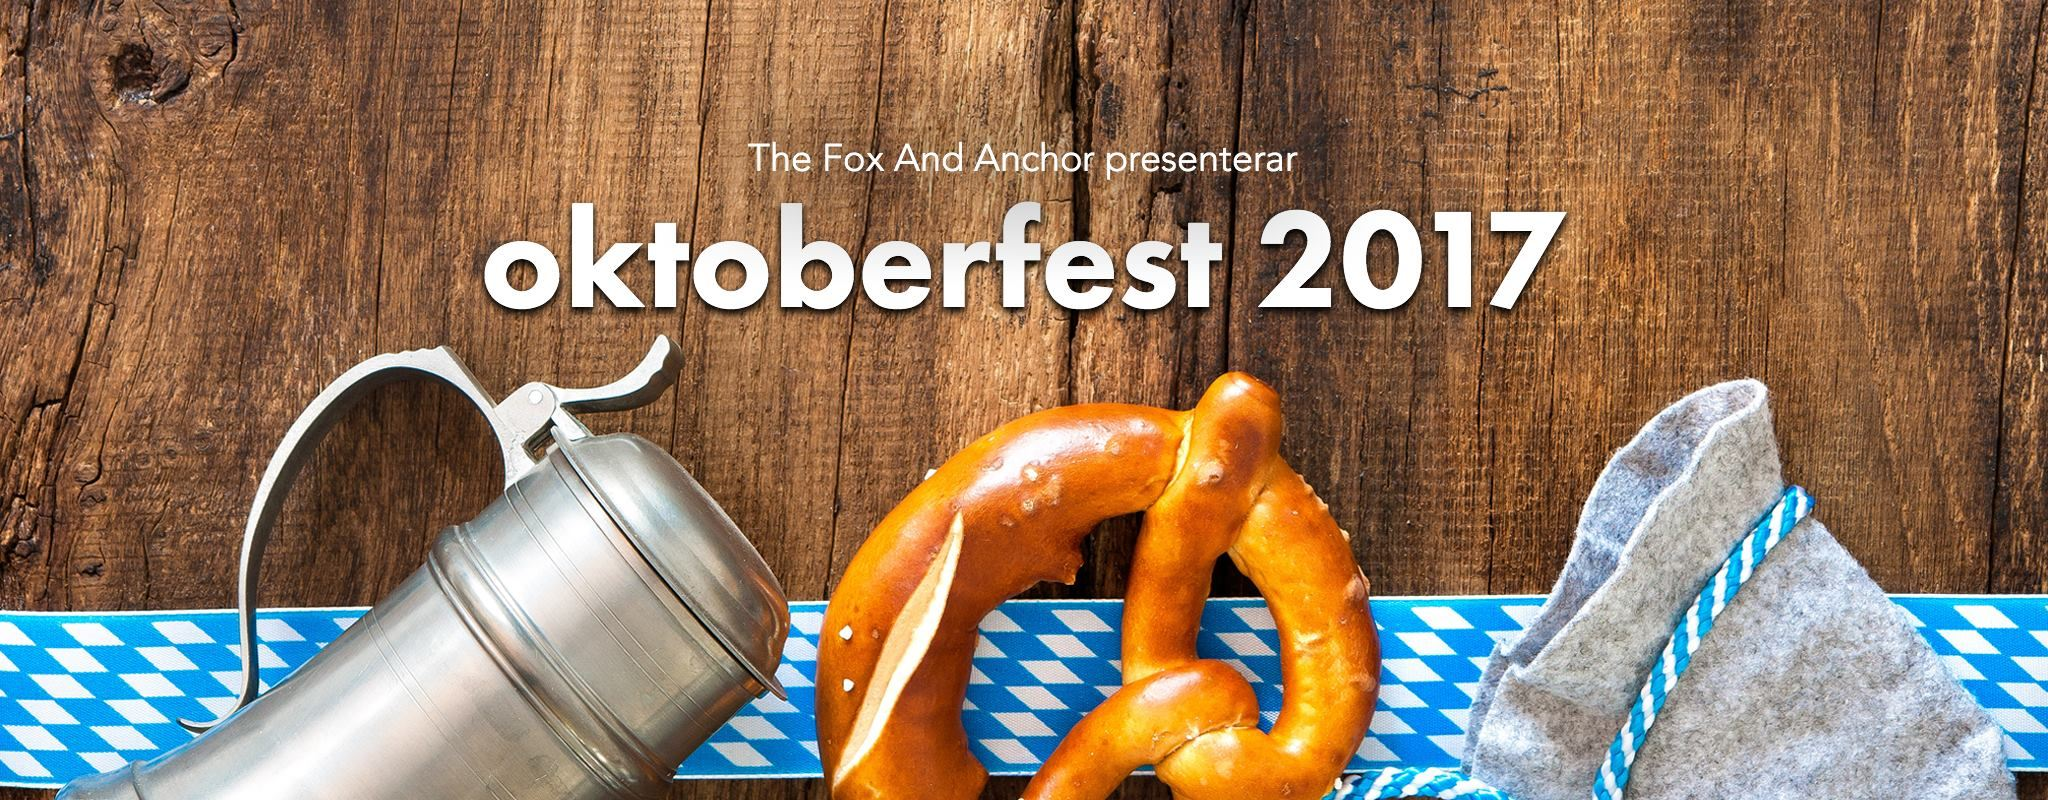 Oktoberfest at The Fox and Anchor